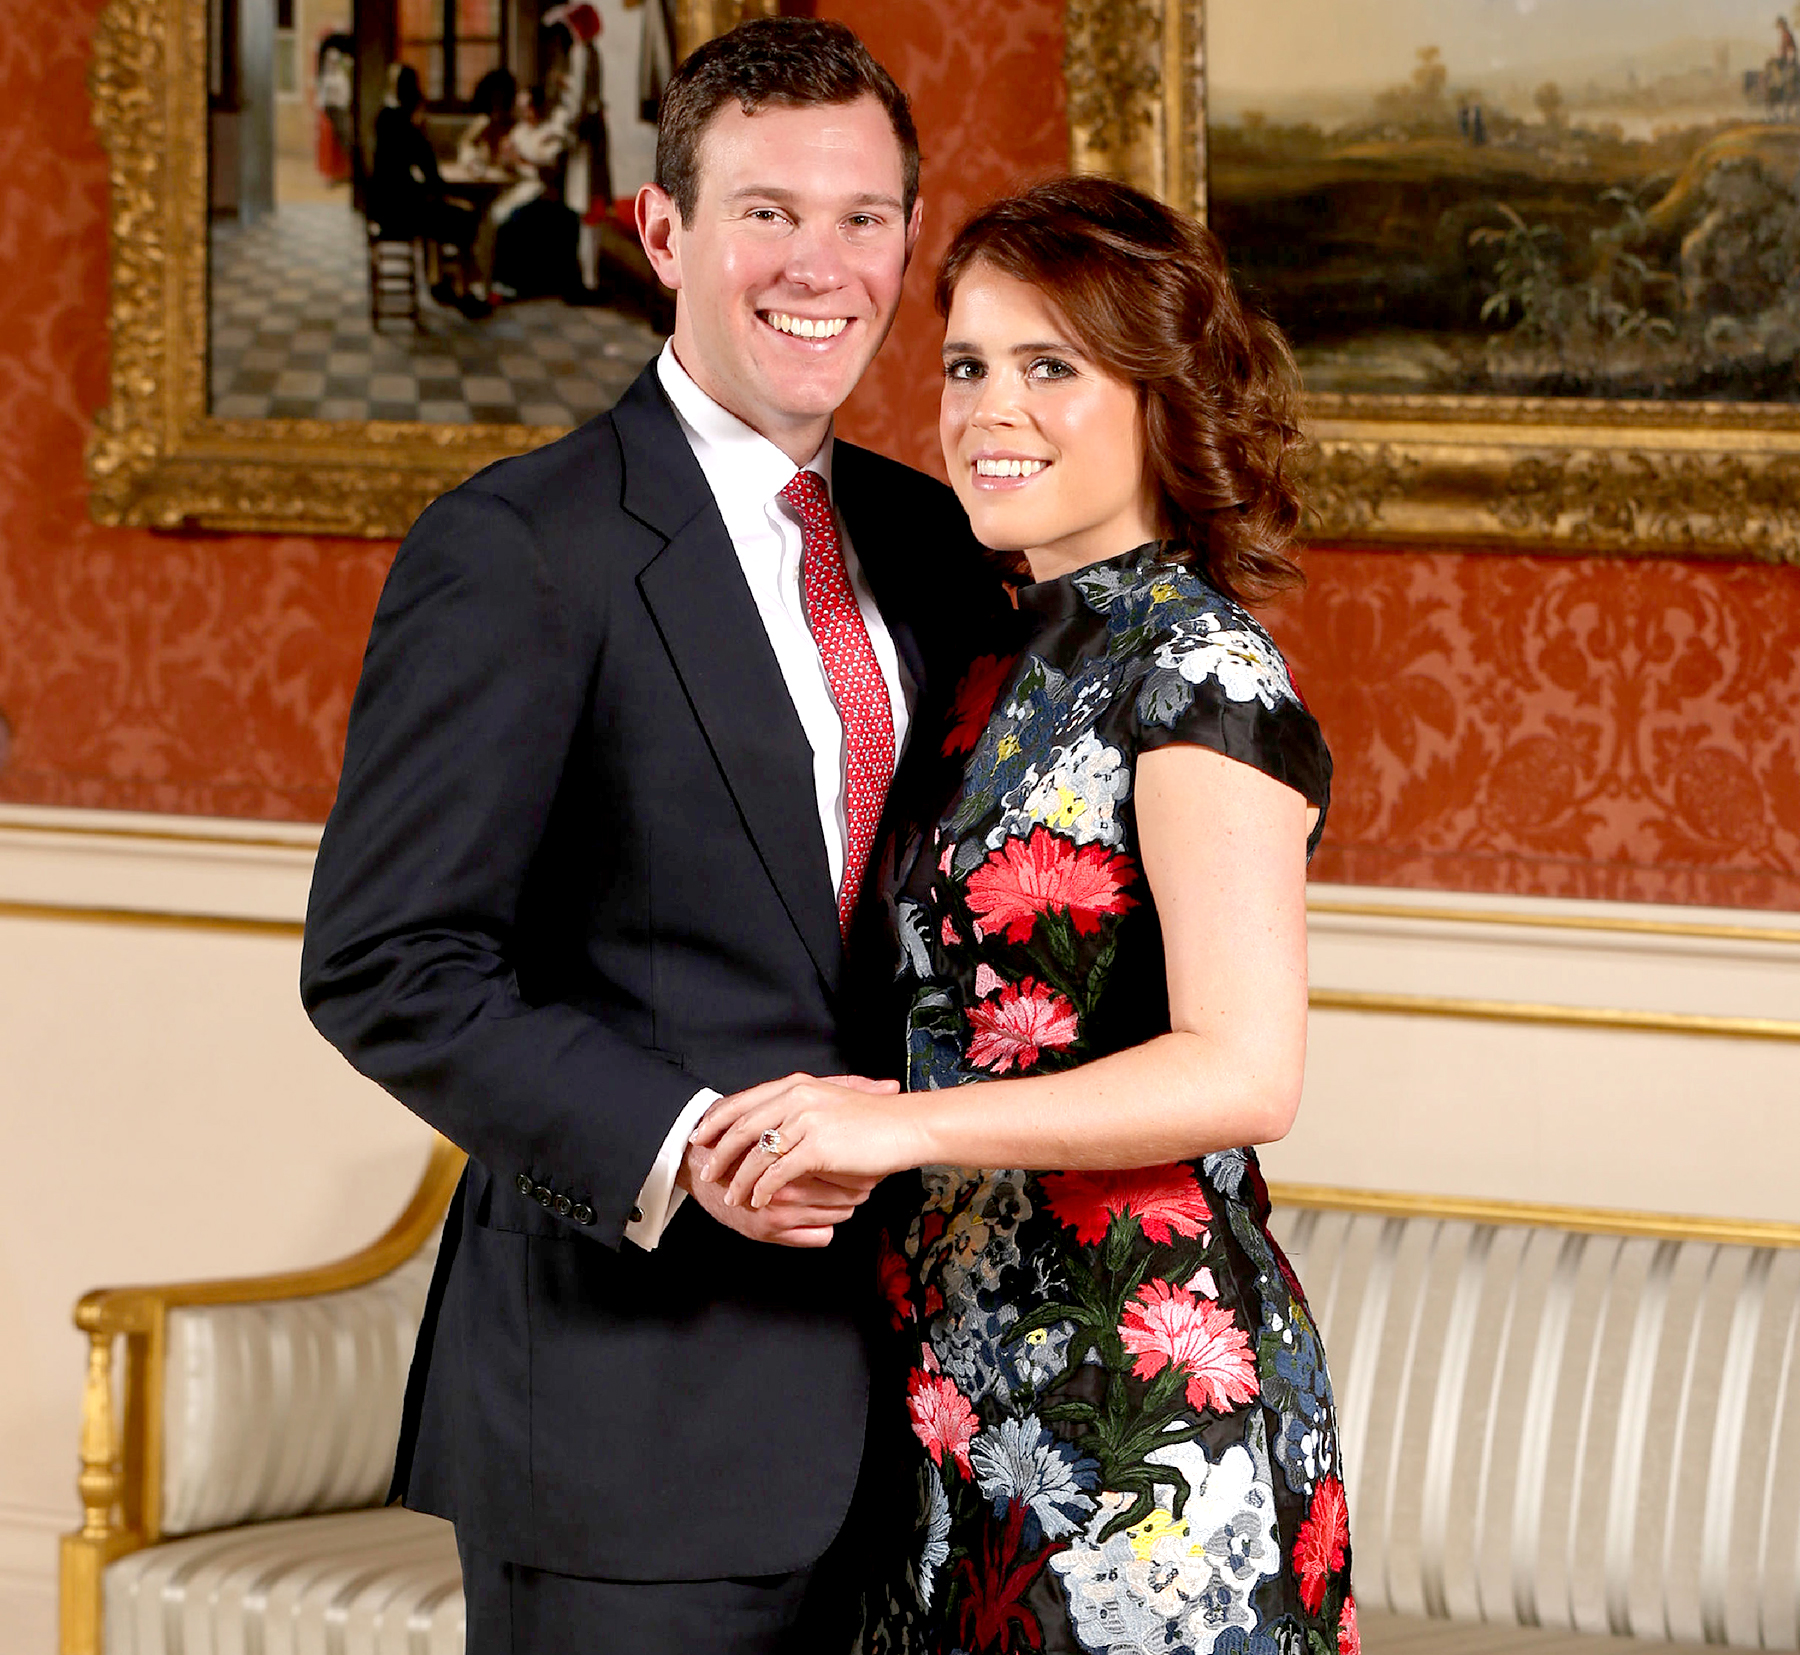 Date confirmed for wedding of Princess Eugenie and Jack Brooksbank